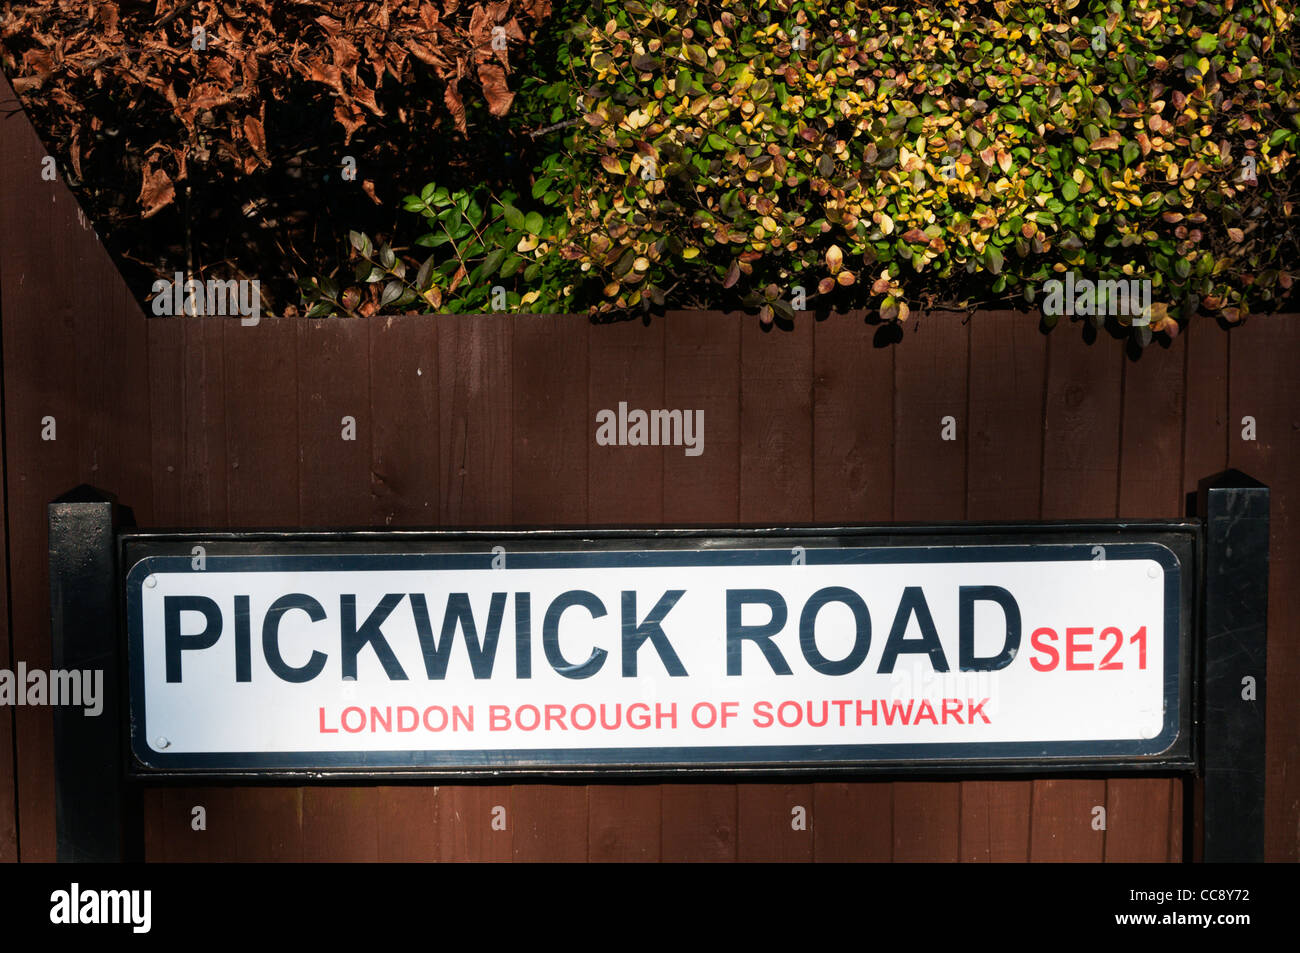 Street sign for Pickwick Road in Dulwich Village, London Borough of Southwark, SE21 - Stock Image